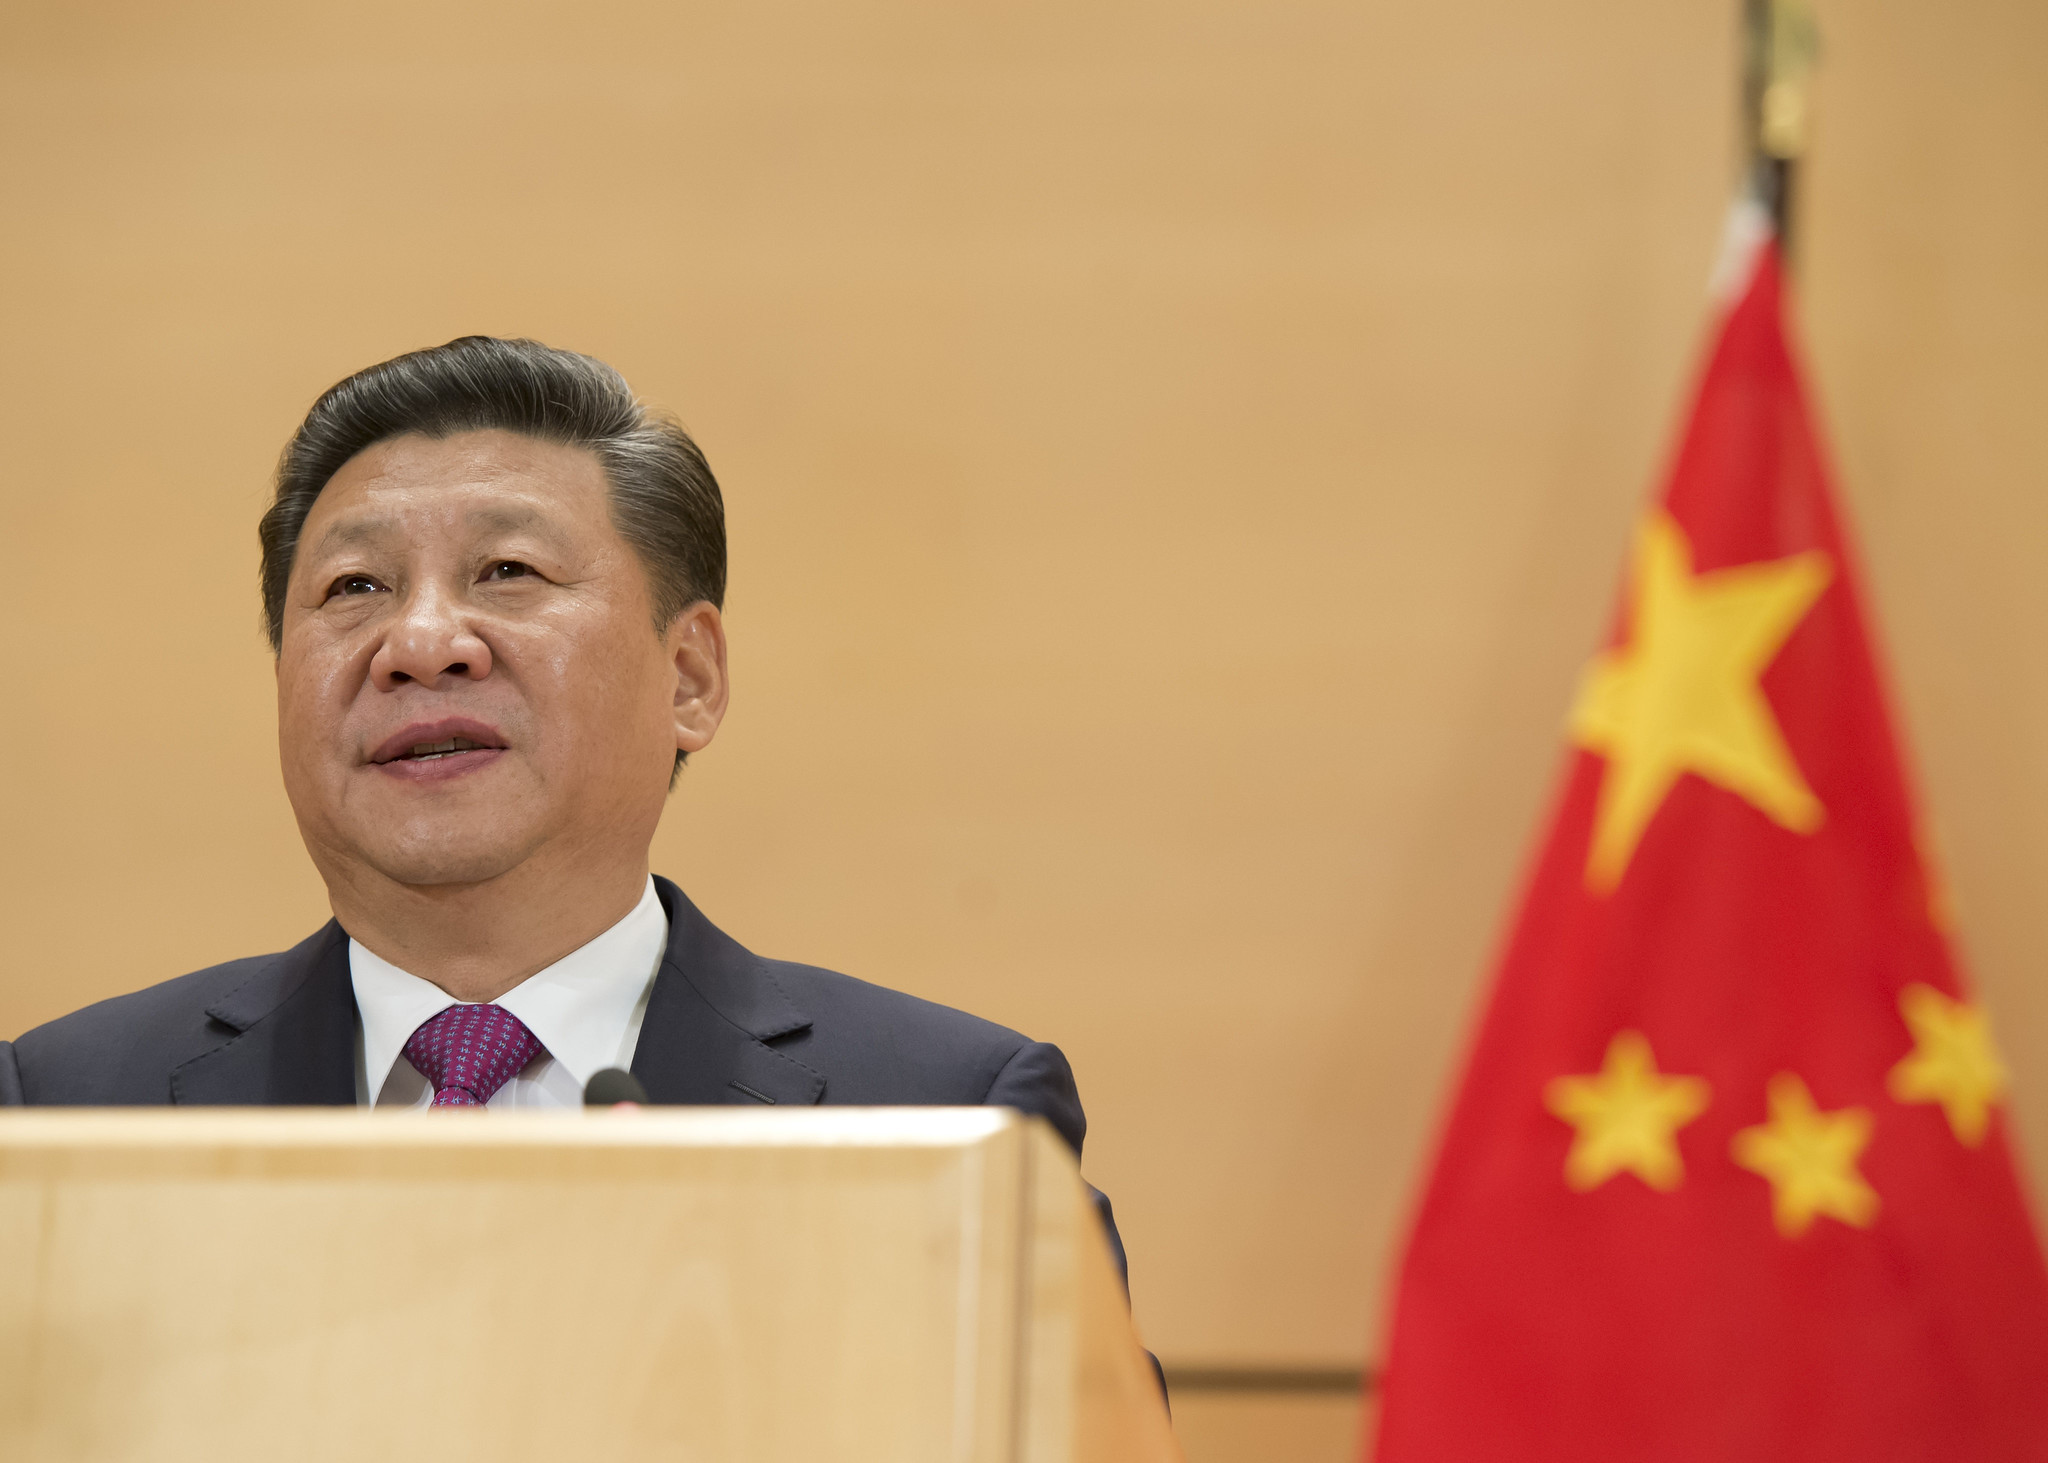 Xi Jinping at the Paris Peace Forum